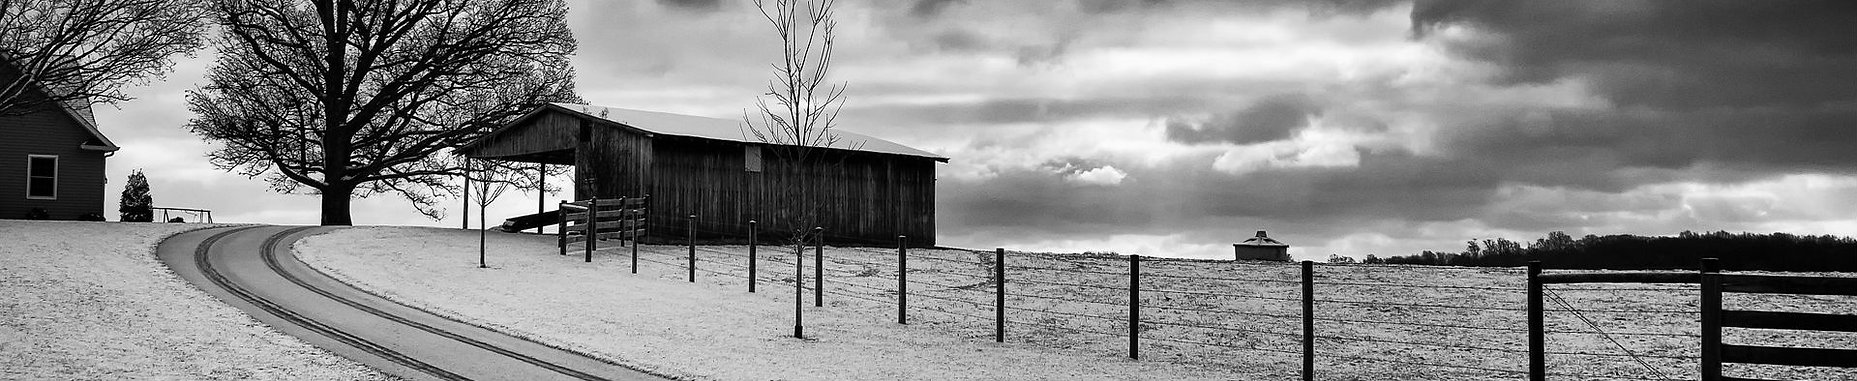 farm black and white.jpg